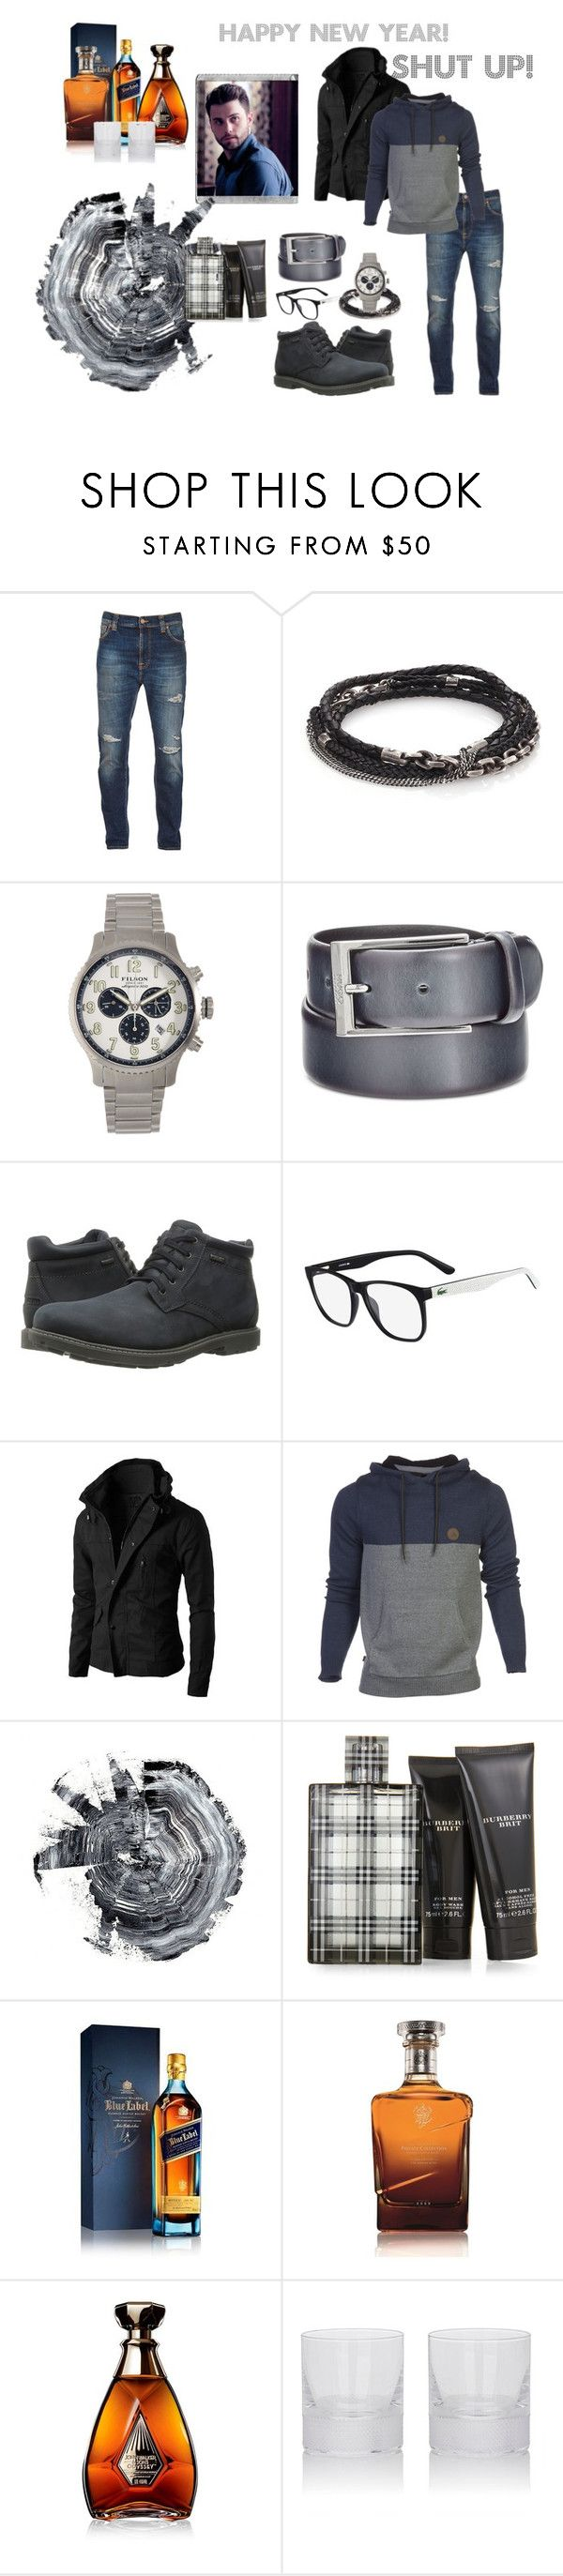 """Kilian #1"" by boondock-saint1999 ❤ liked on Polyvore featuring Polaroid, Nudie Jeans Co., title of work, Filson, HUGO, Rockport, Lacoste, HippyTree, Burberry and Johnnie Walker"